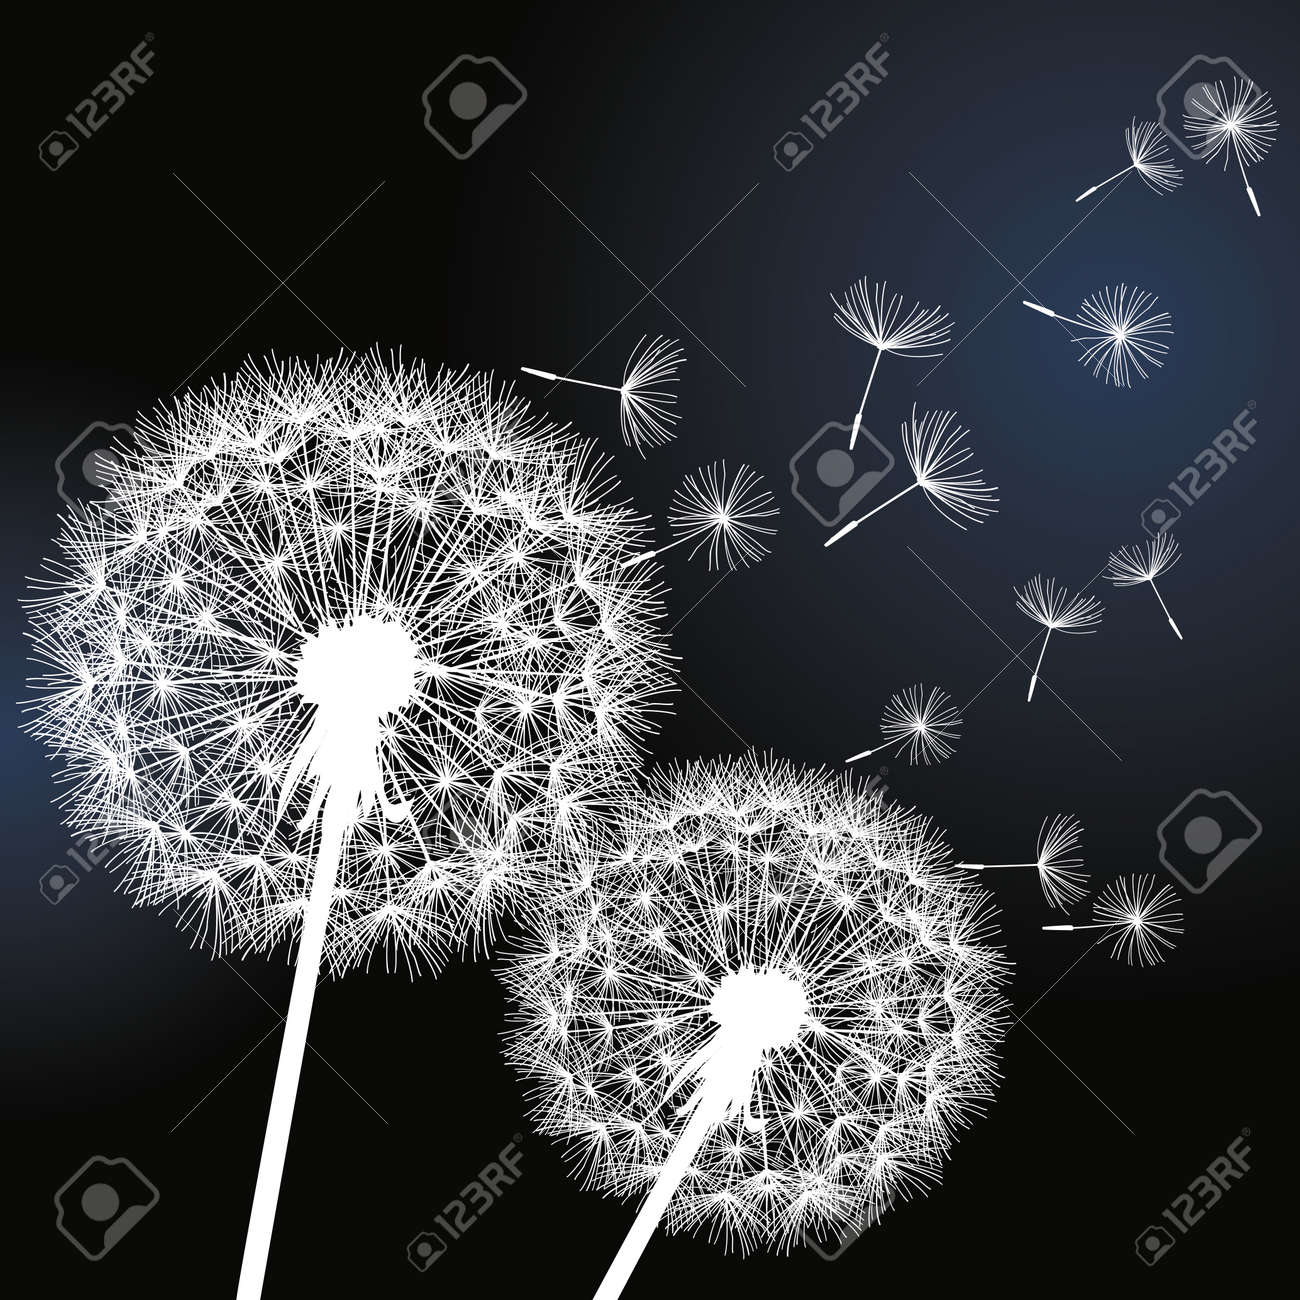 Good Wallpaper Black And White Romantic - 30404237-stylish-background-with-two-white-flowers-dandelions-on-black-background-beautiful-trendy-romantic-w  HD_85665.jpg